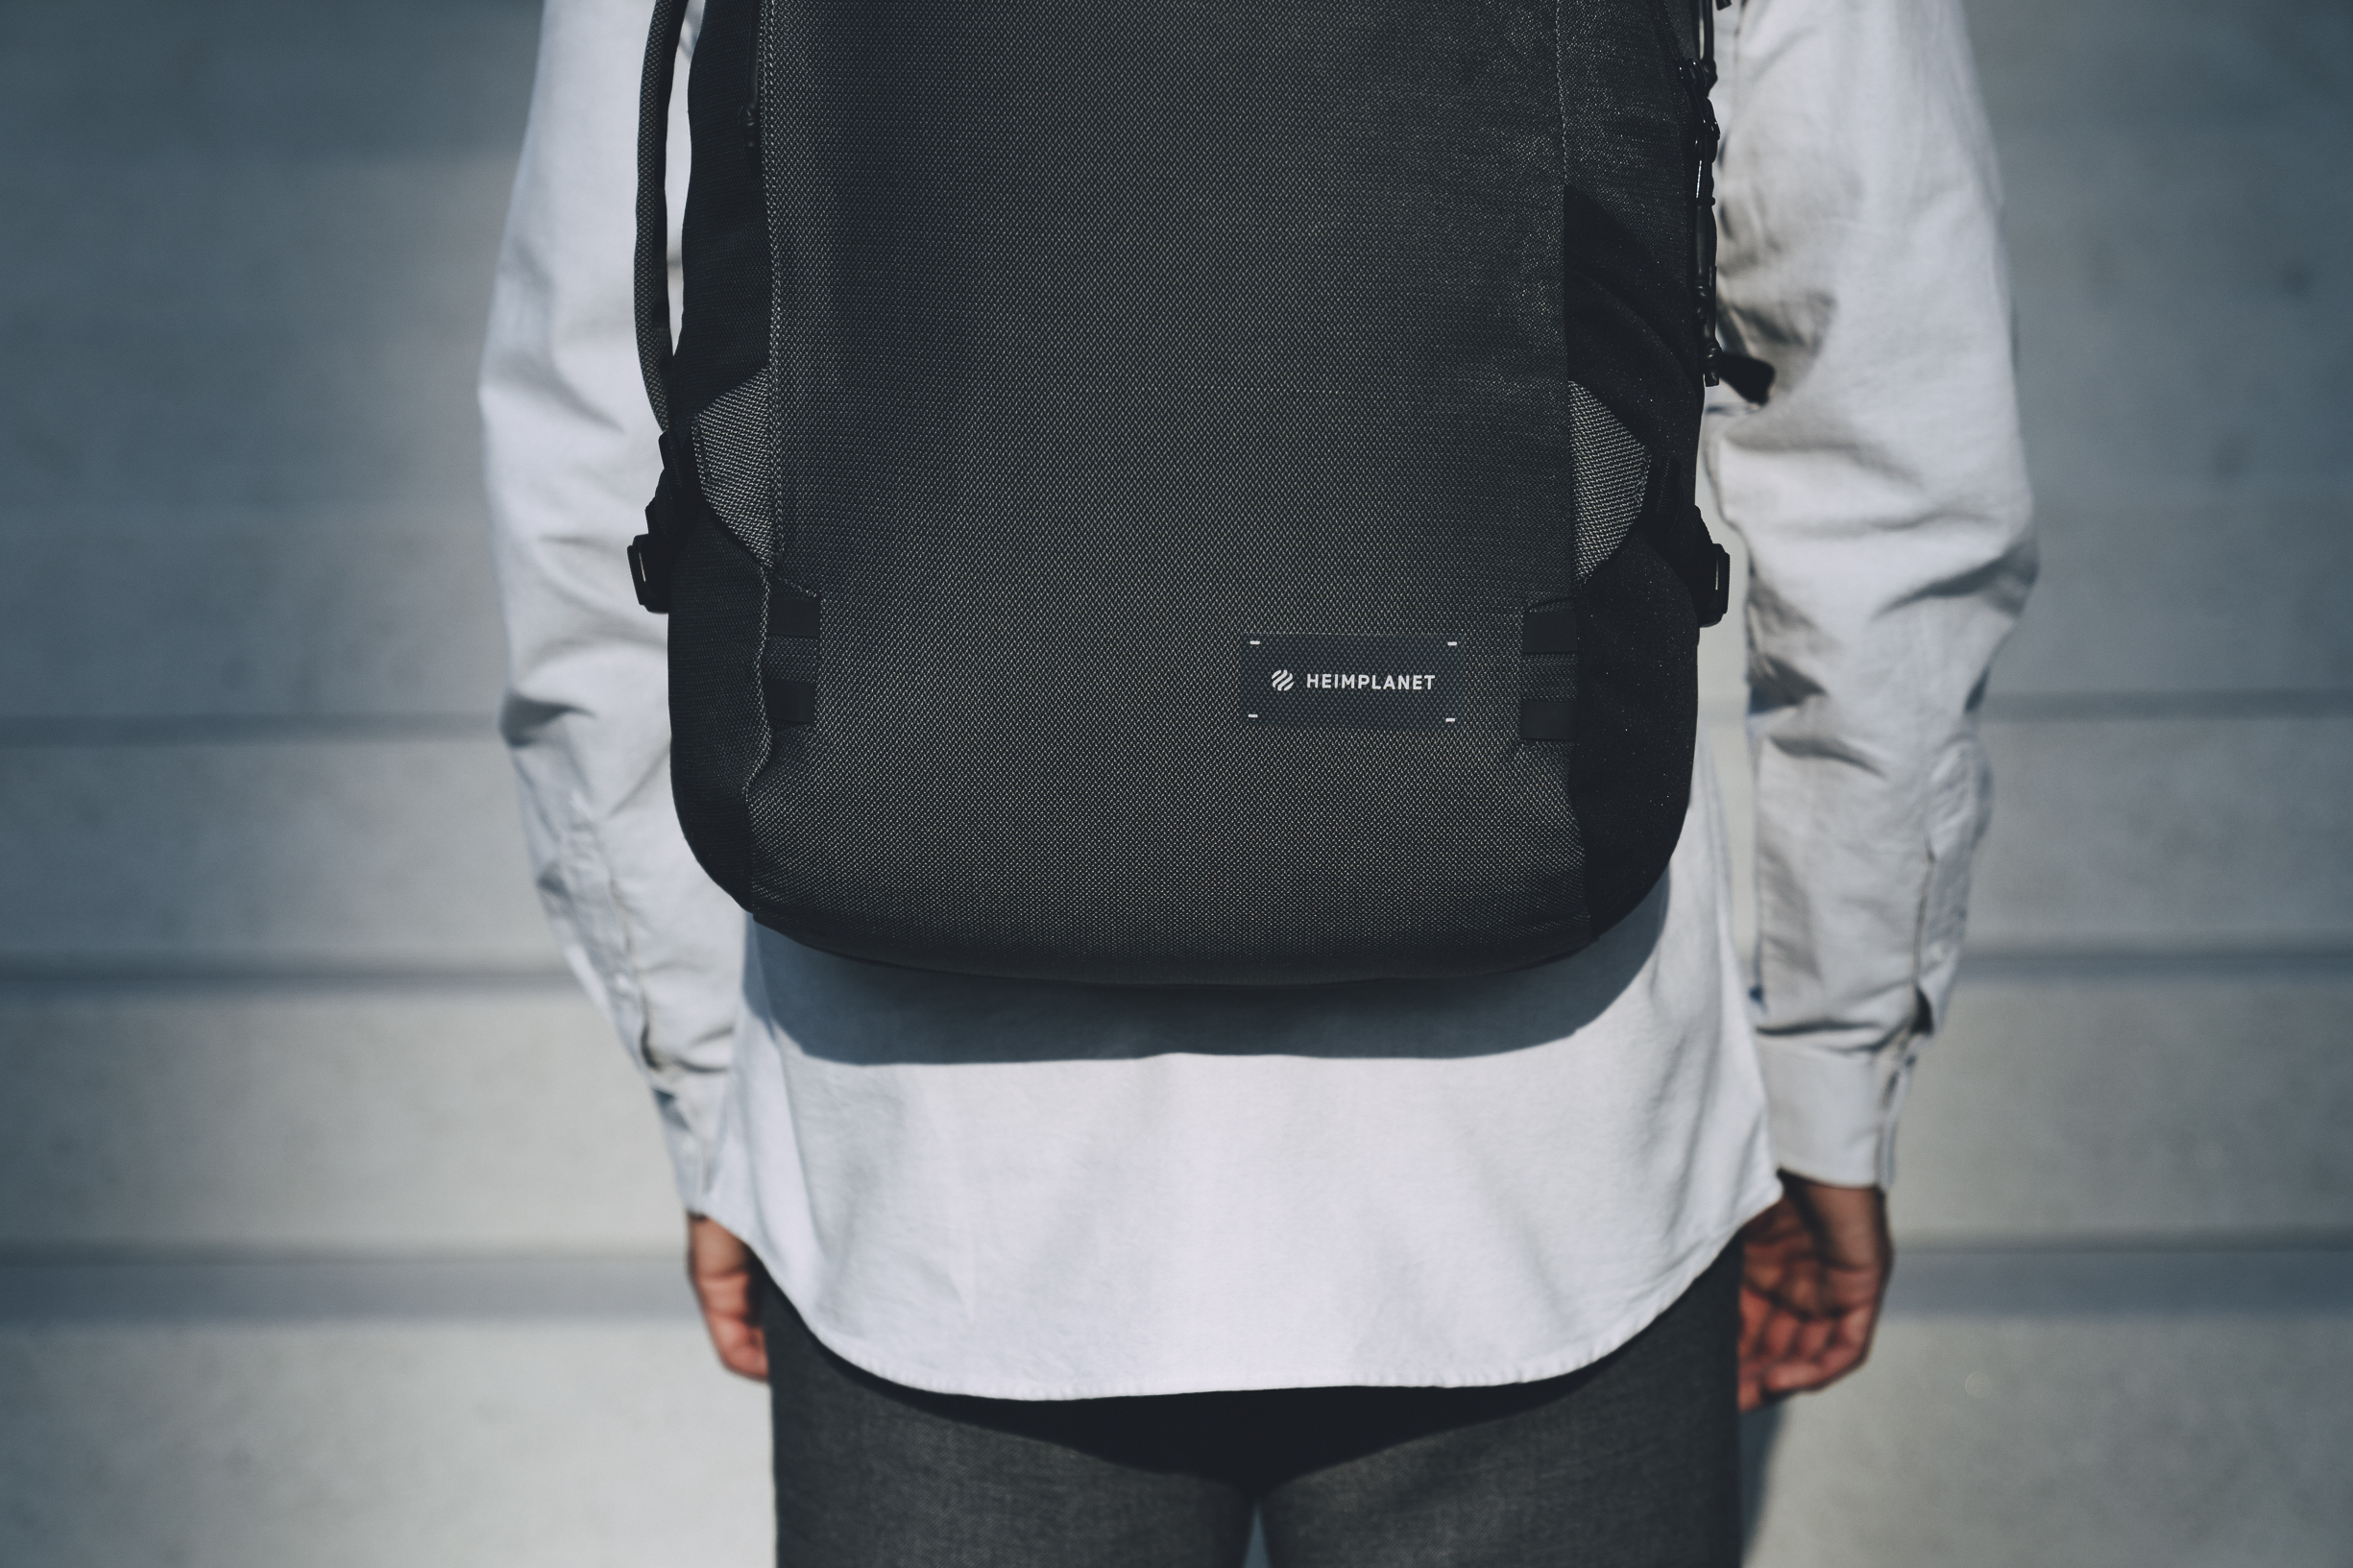 HEIMPLANET TRANSIT LINE Travel Pack 7